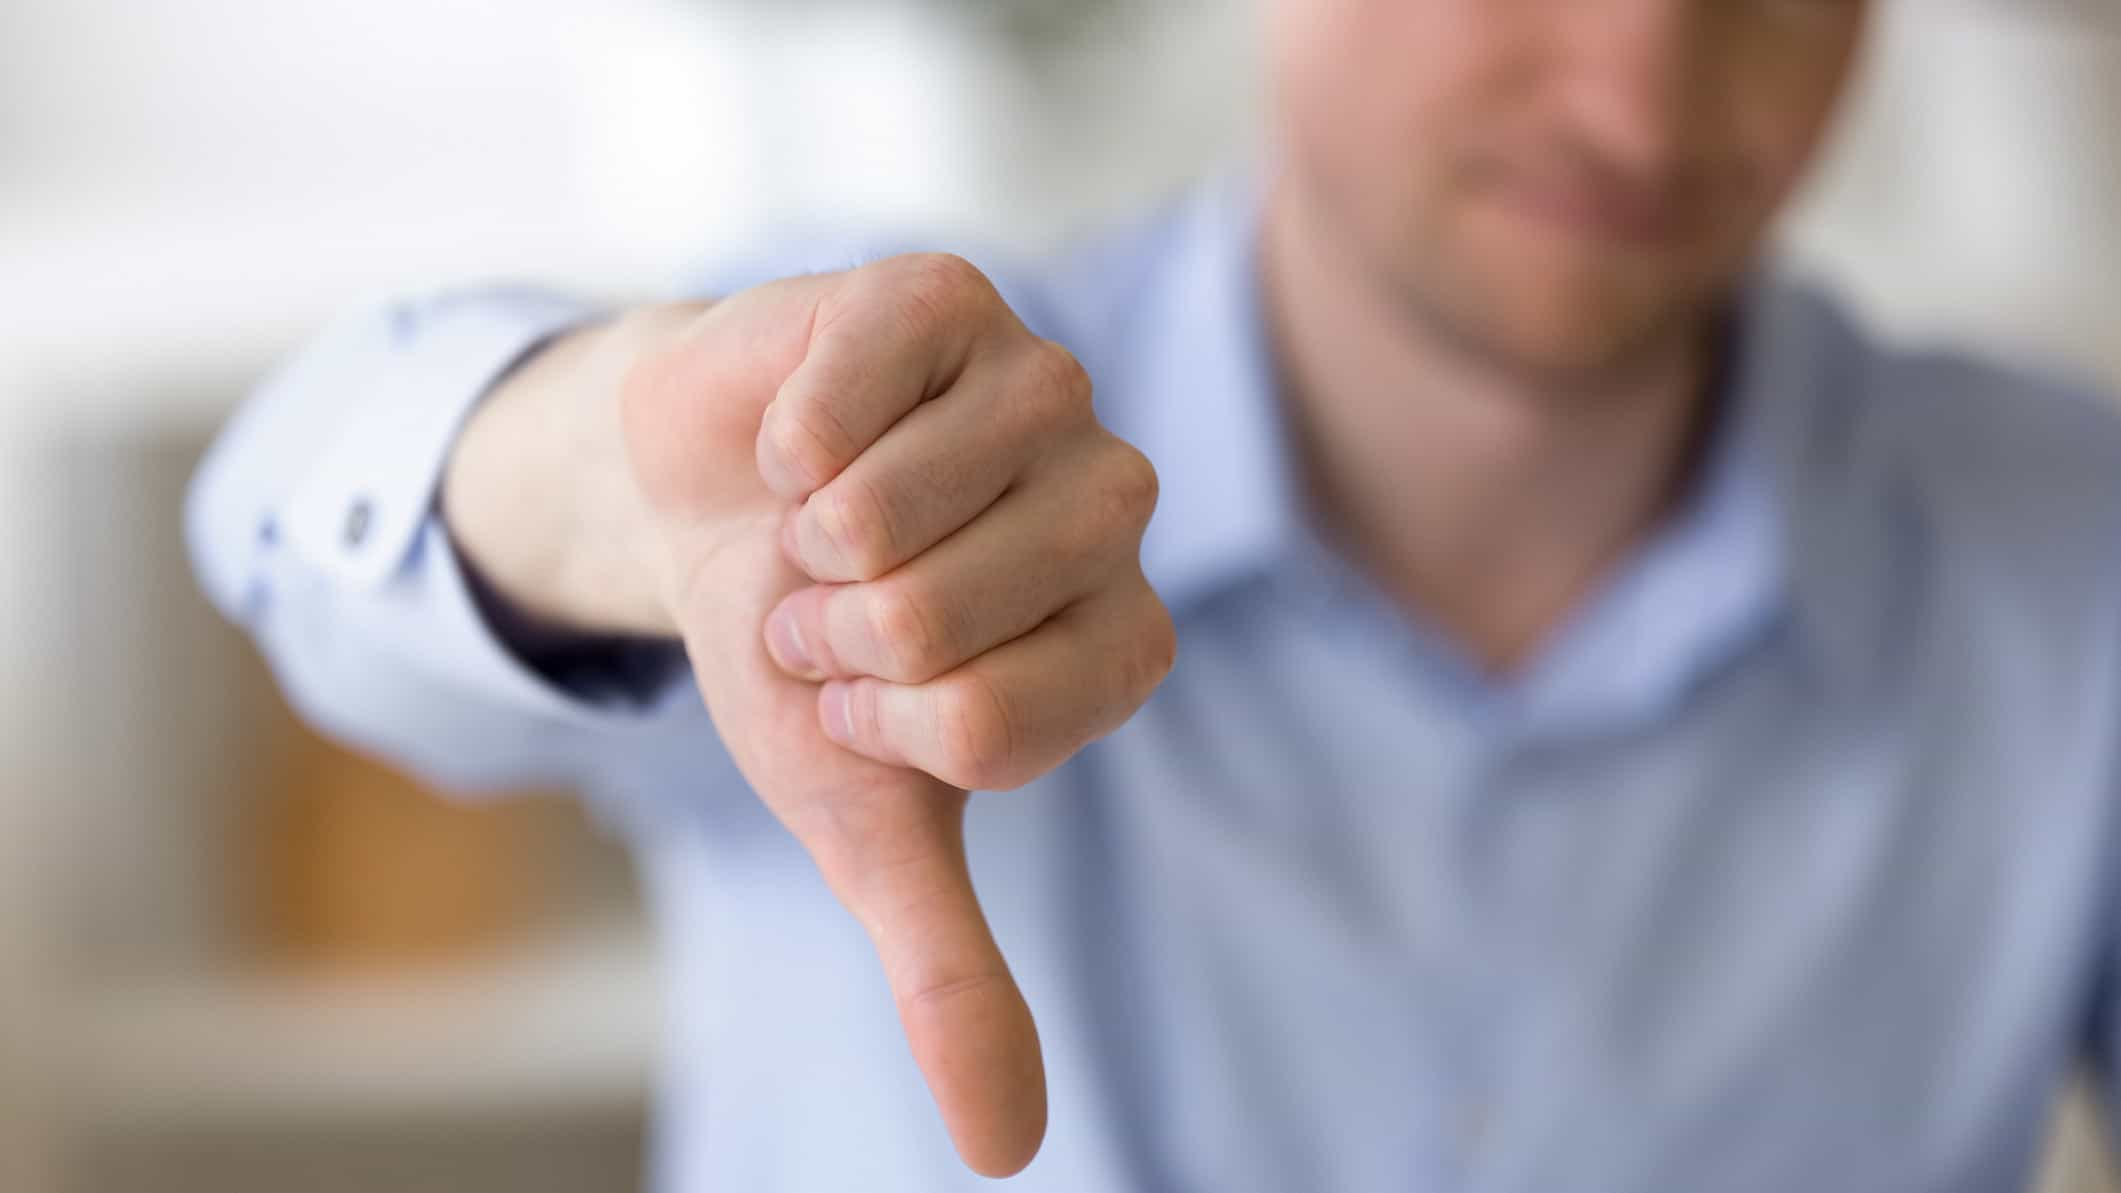 man making thumbs down gesture